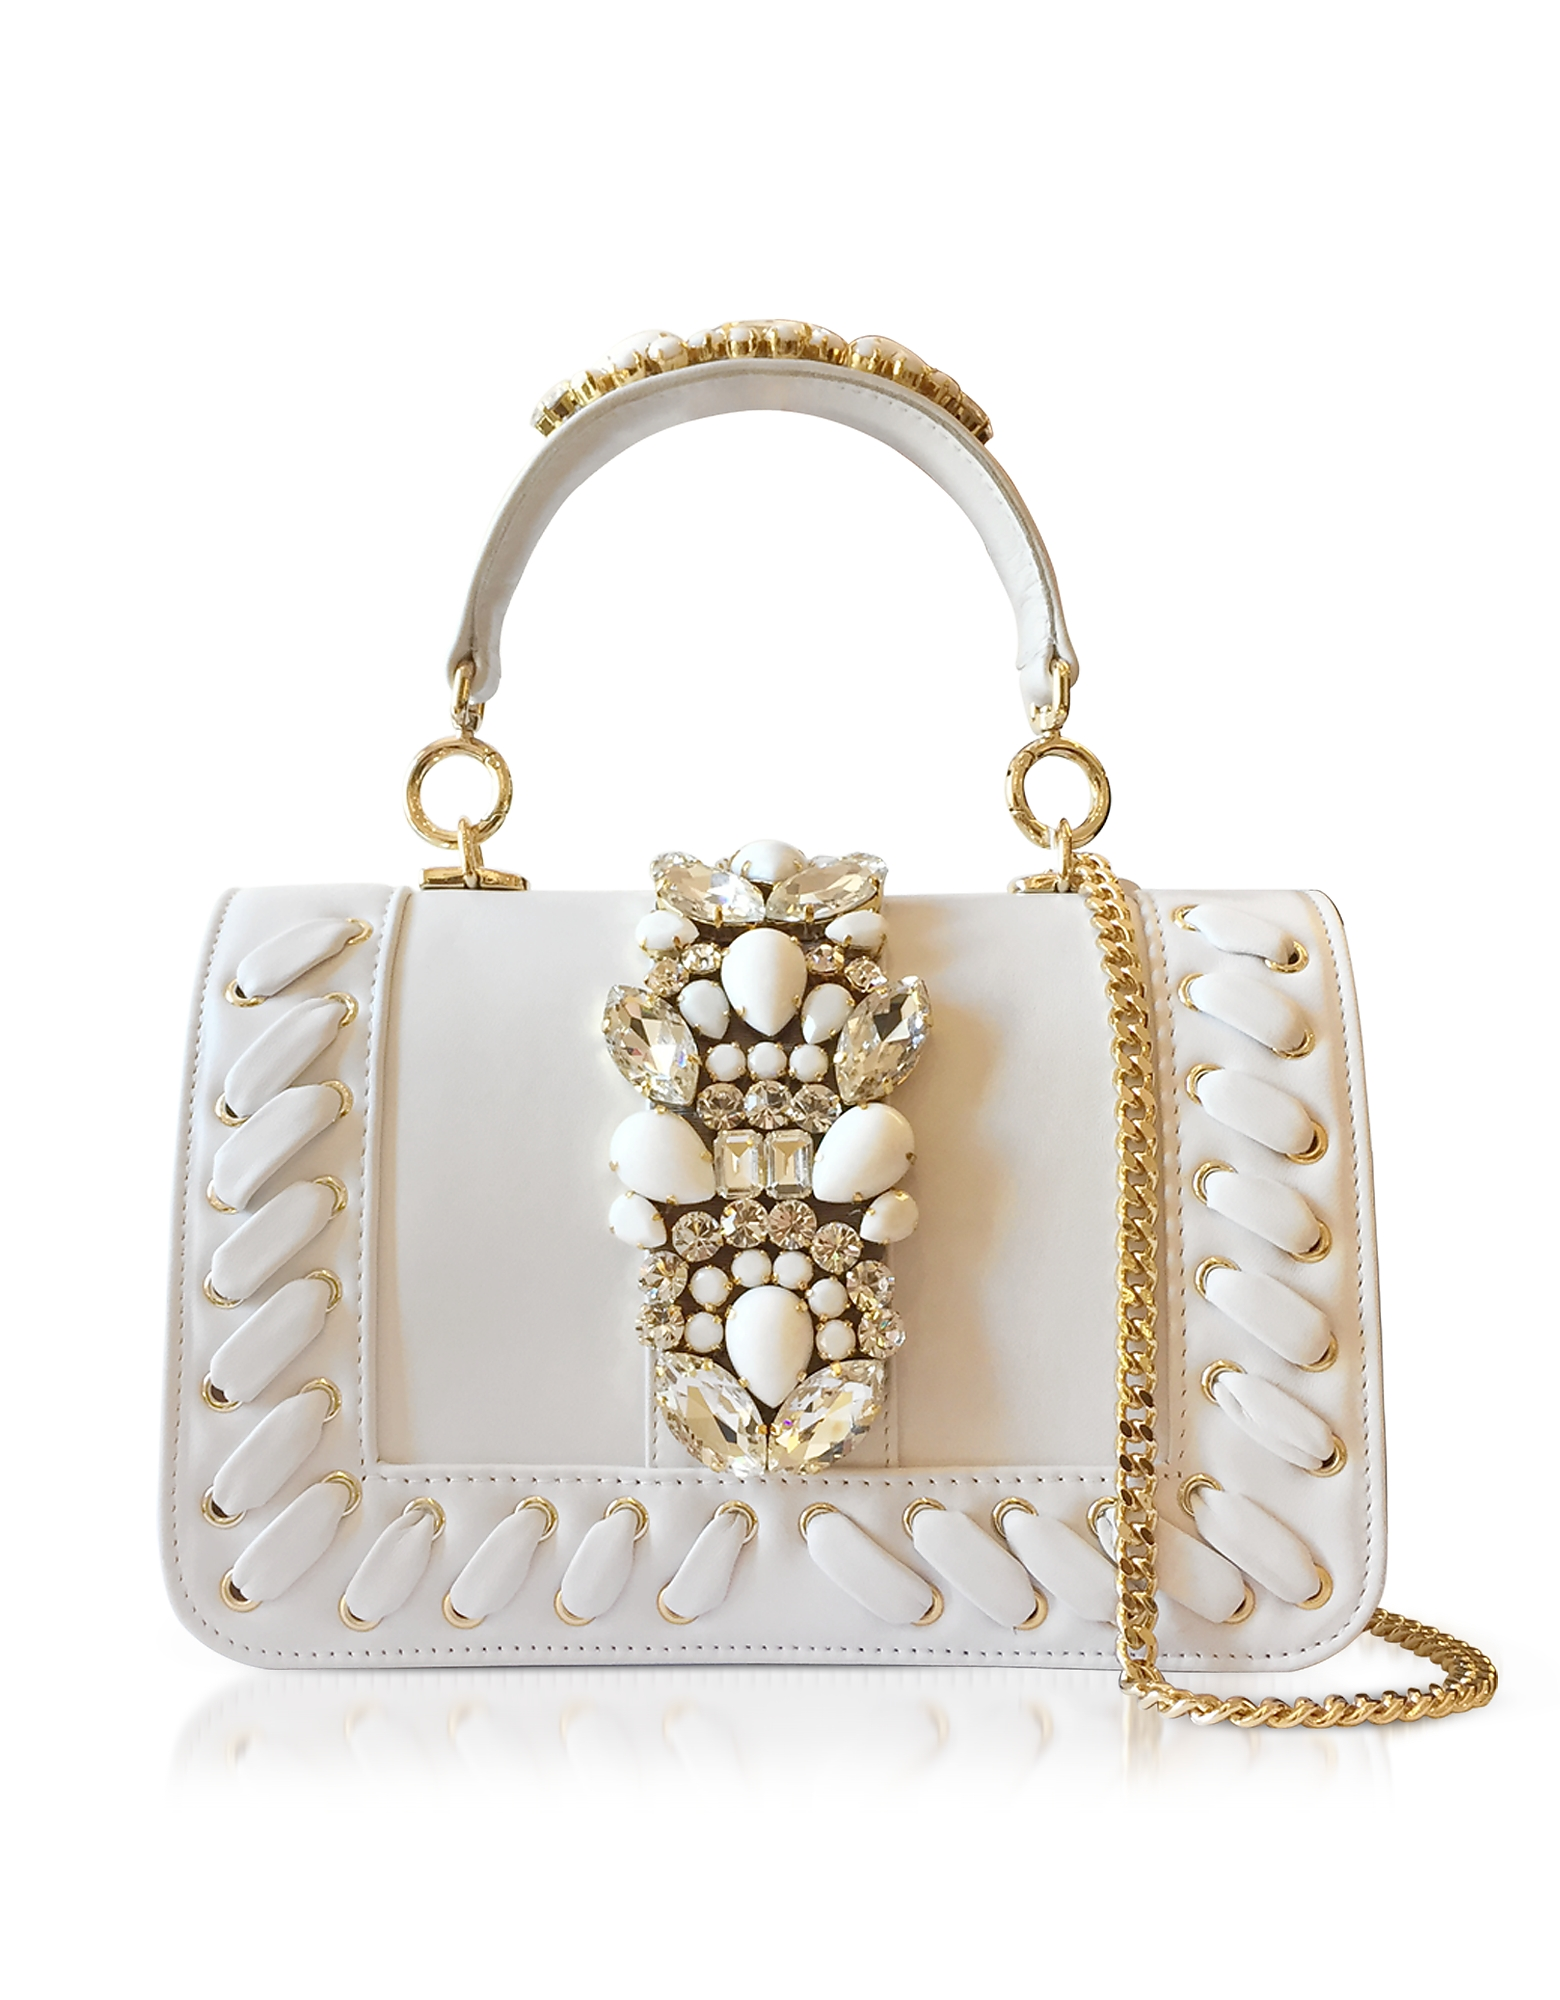 Gedebe Handbags, Bibi White Leather Plot Satchel Bag w/Crystals